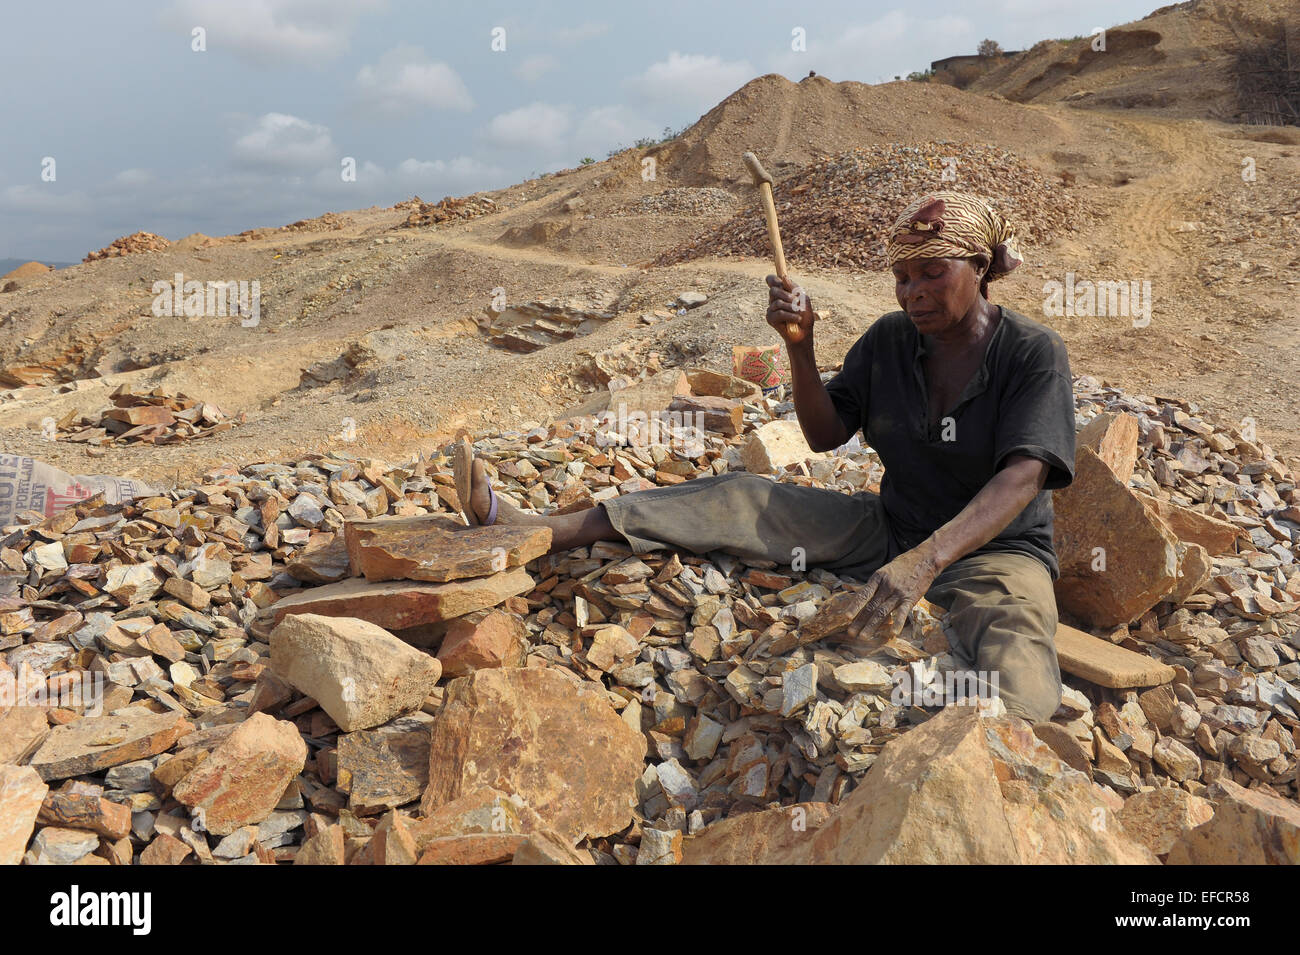 A woman works breaking rocks into gravel at a quarry near Accra, Ghana, West Africa. - Stock Image